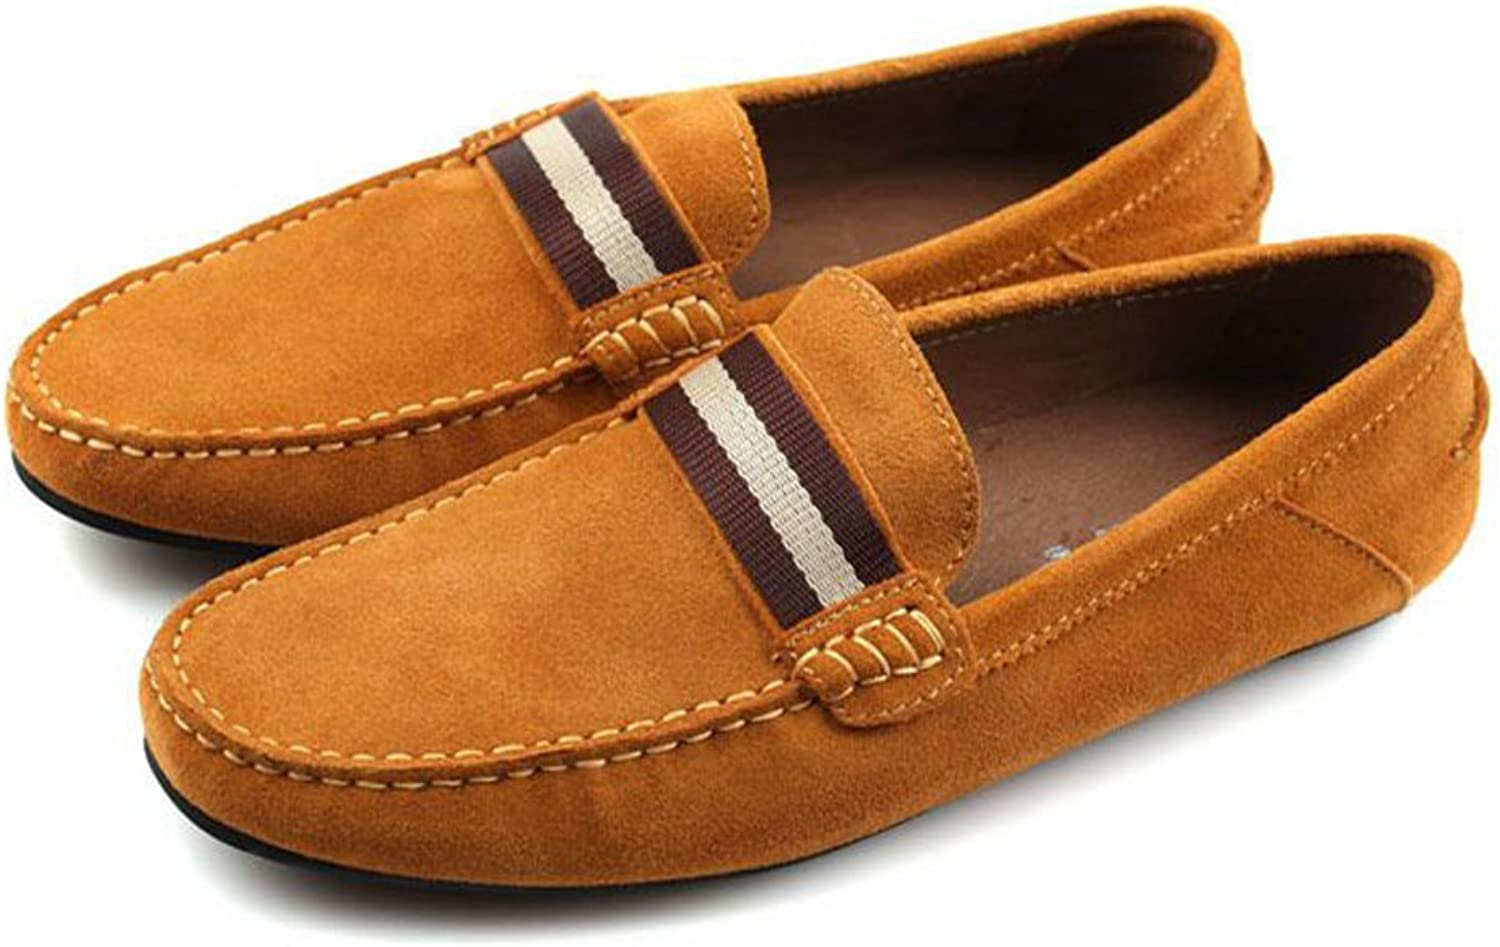 Santimon-Men's Gentleman Nubuck Leather Causal Leisure shoes Loafers